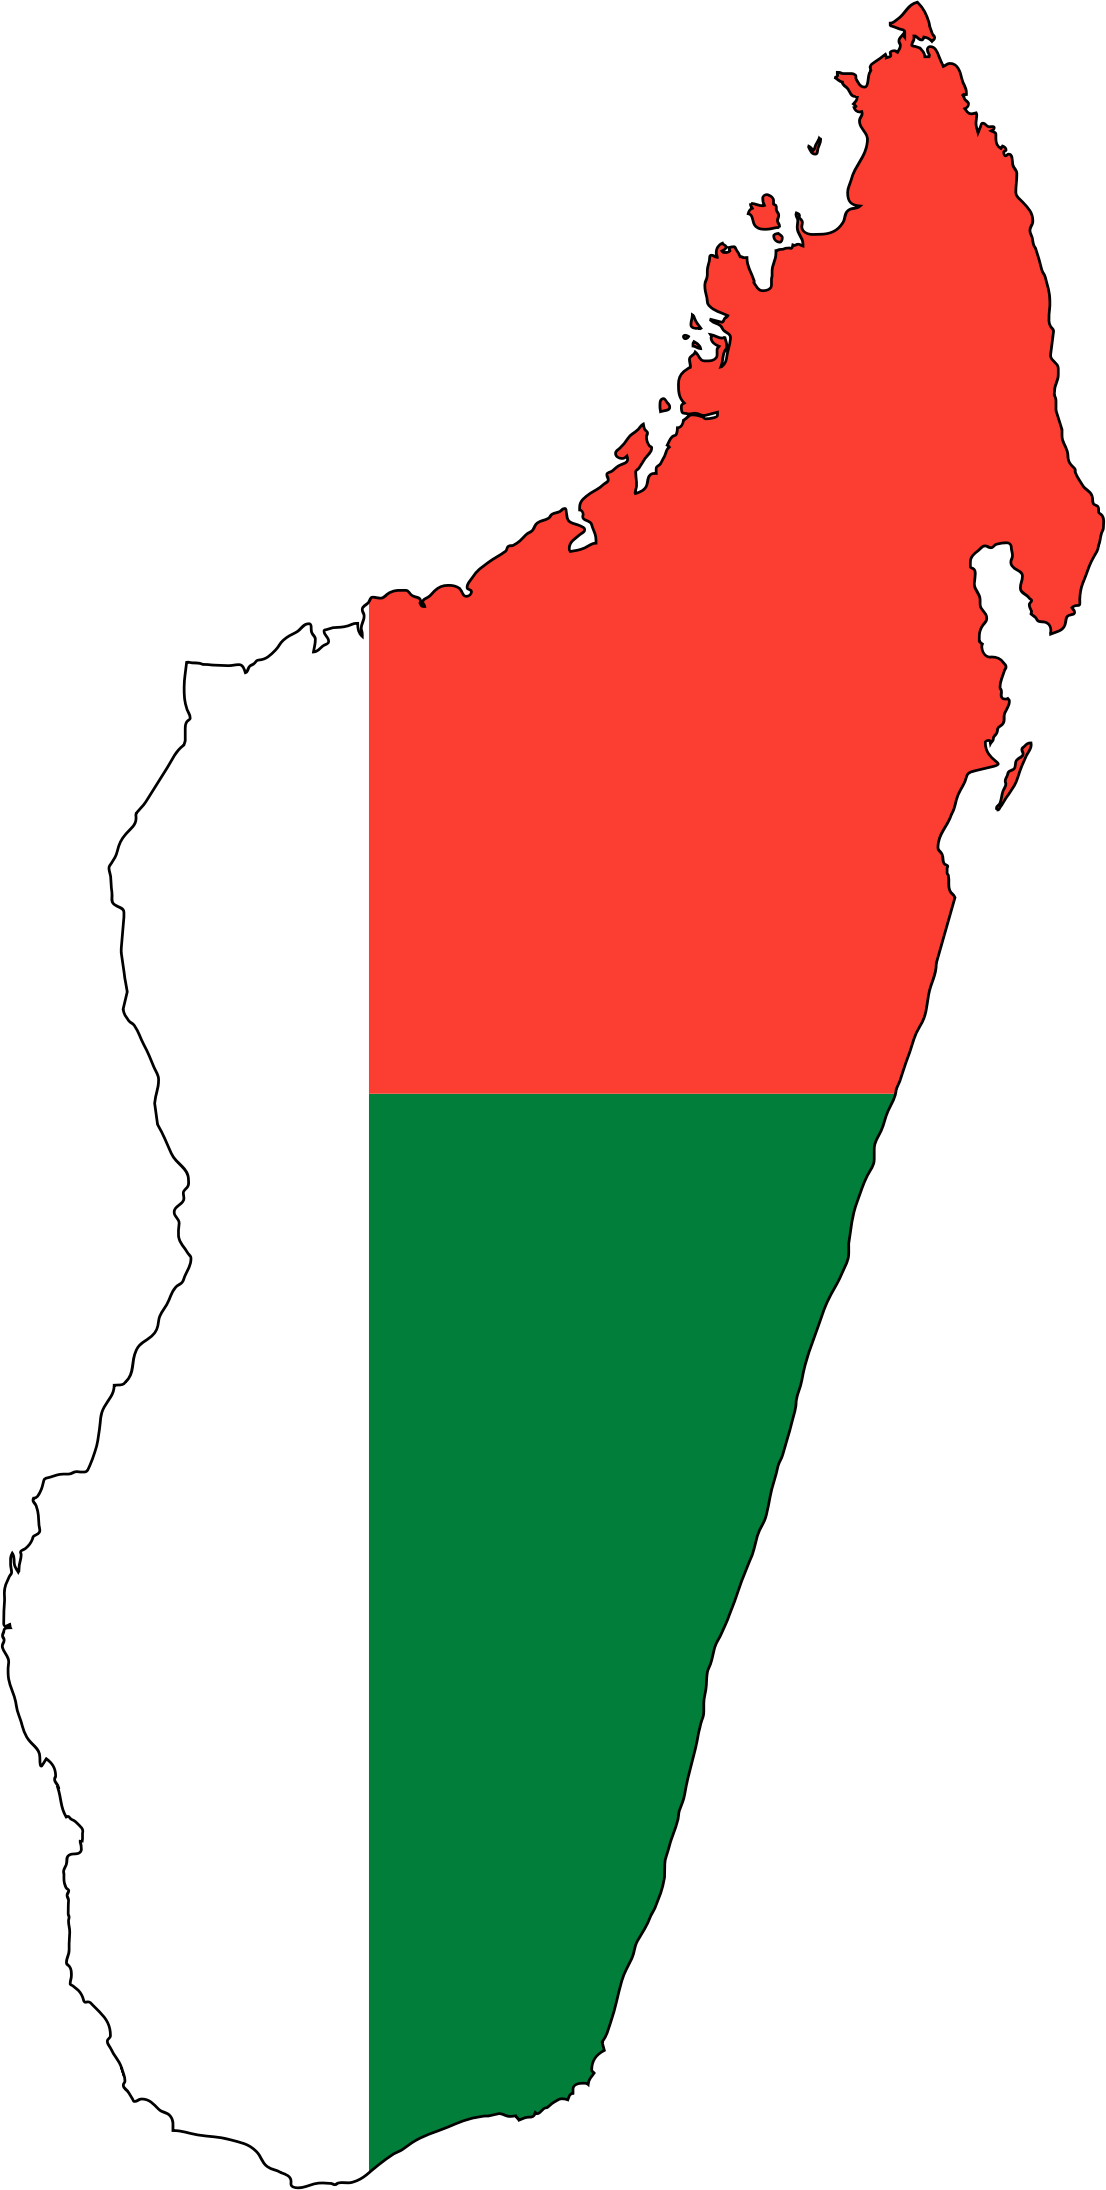 Clipart Madagascar Flag Map With Stroke - Madagascar map outline